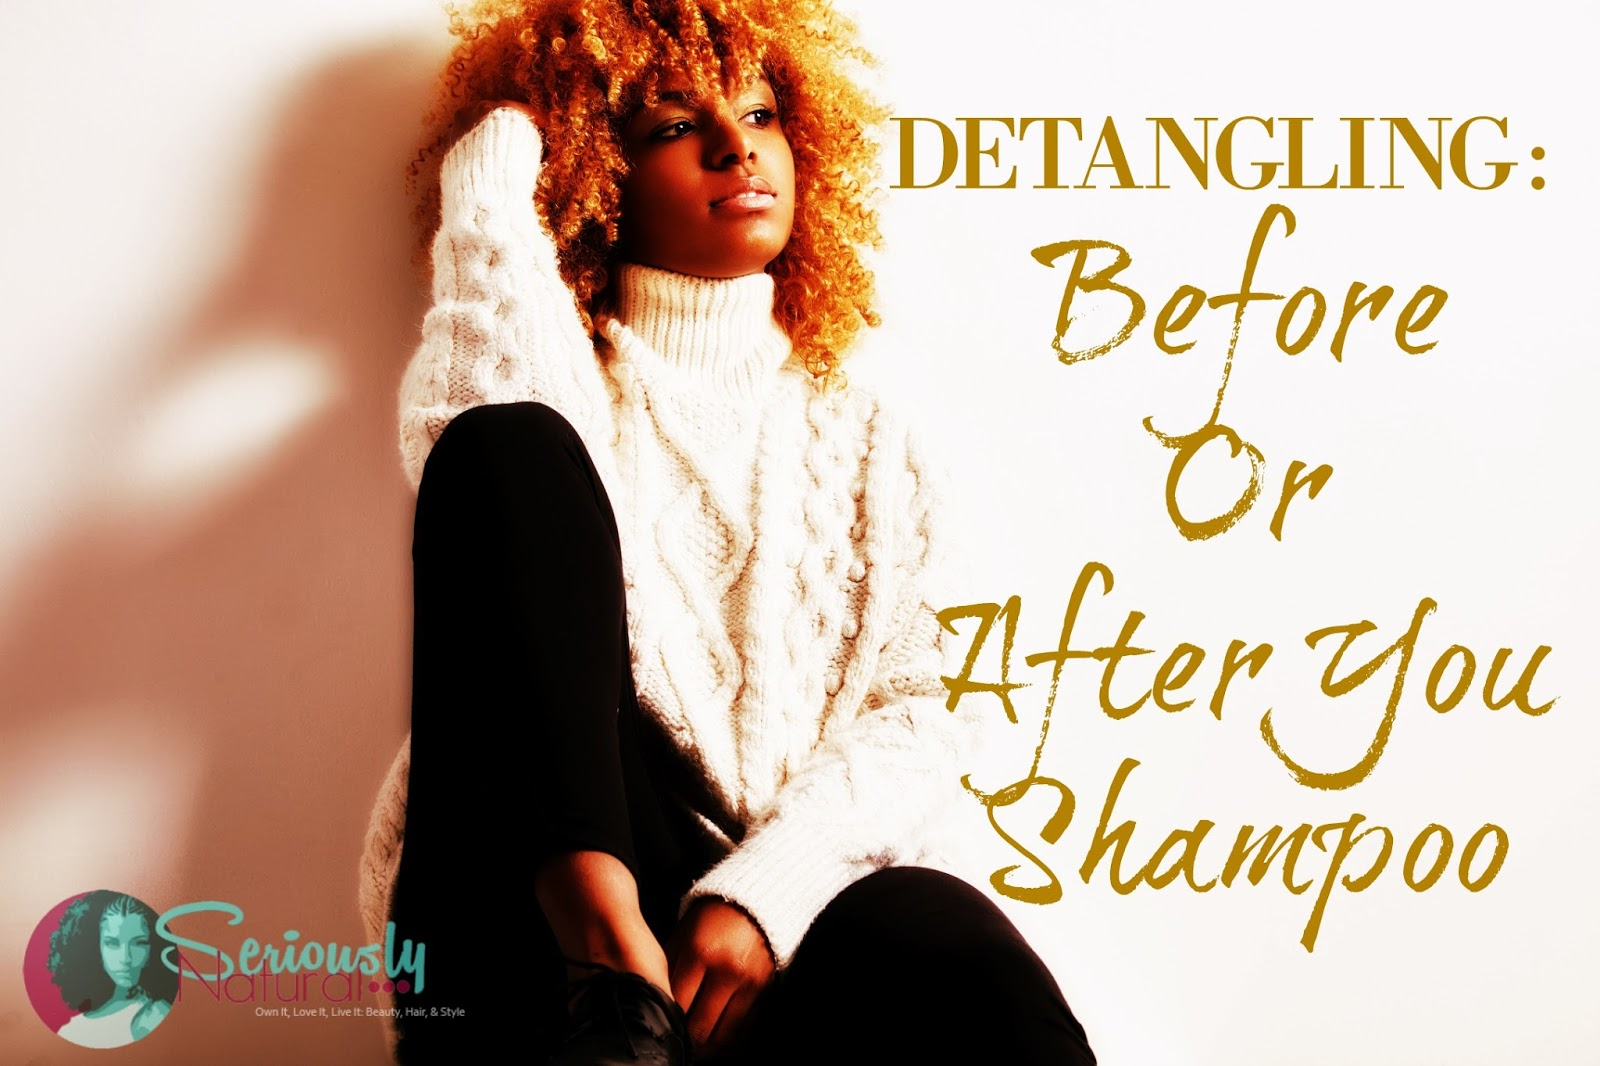 Detangling Natural Hair Before Or After You Shampoo? Which Is Better?